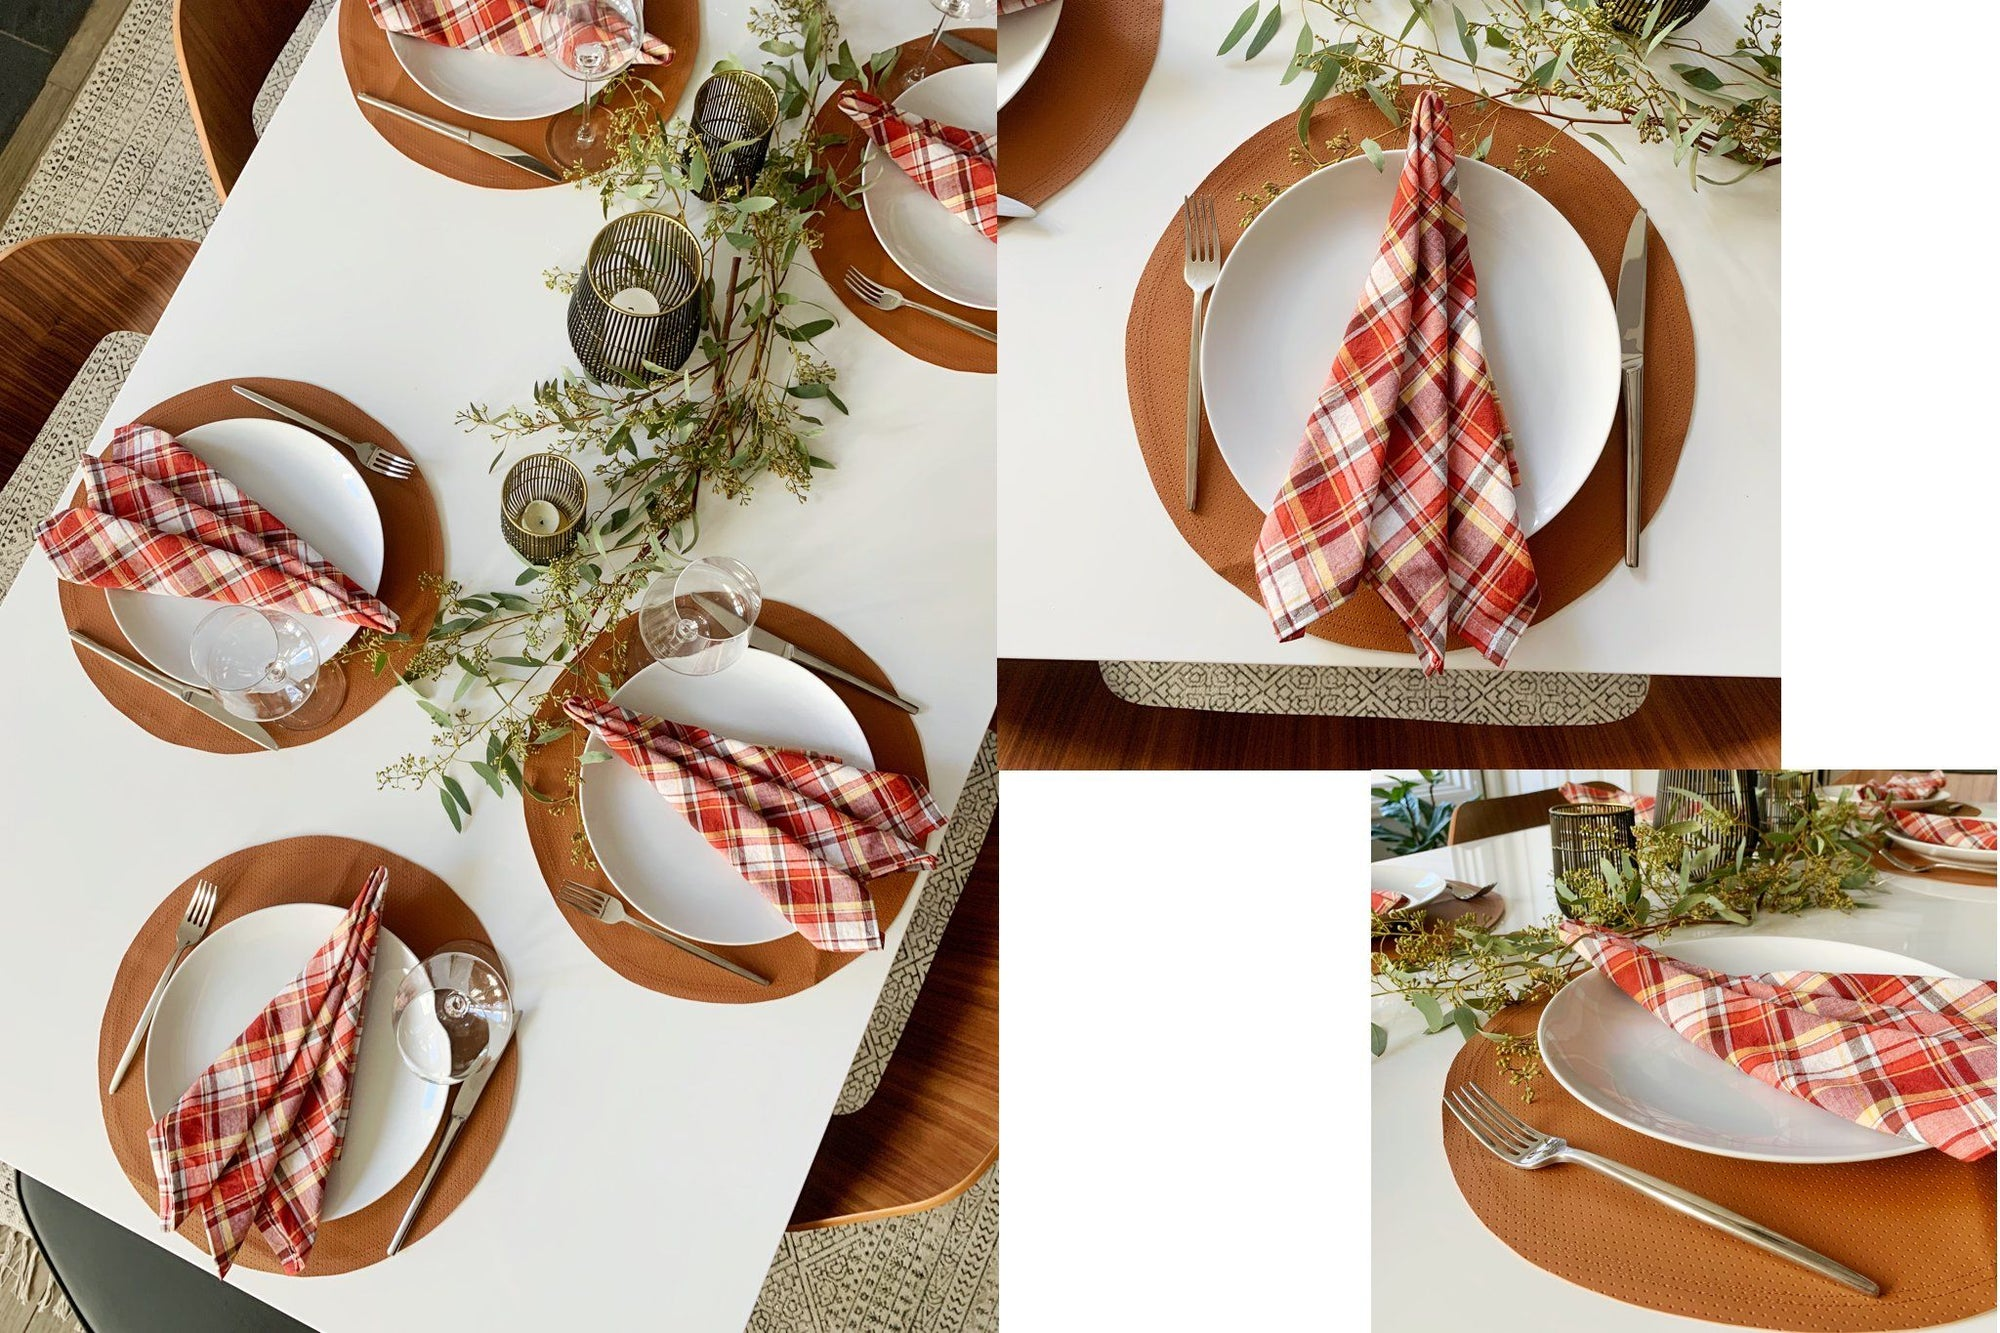 DIY Faux Leather Placemats and Plaid Napkins for Holiday Table Tutorial